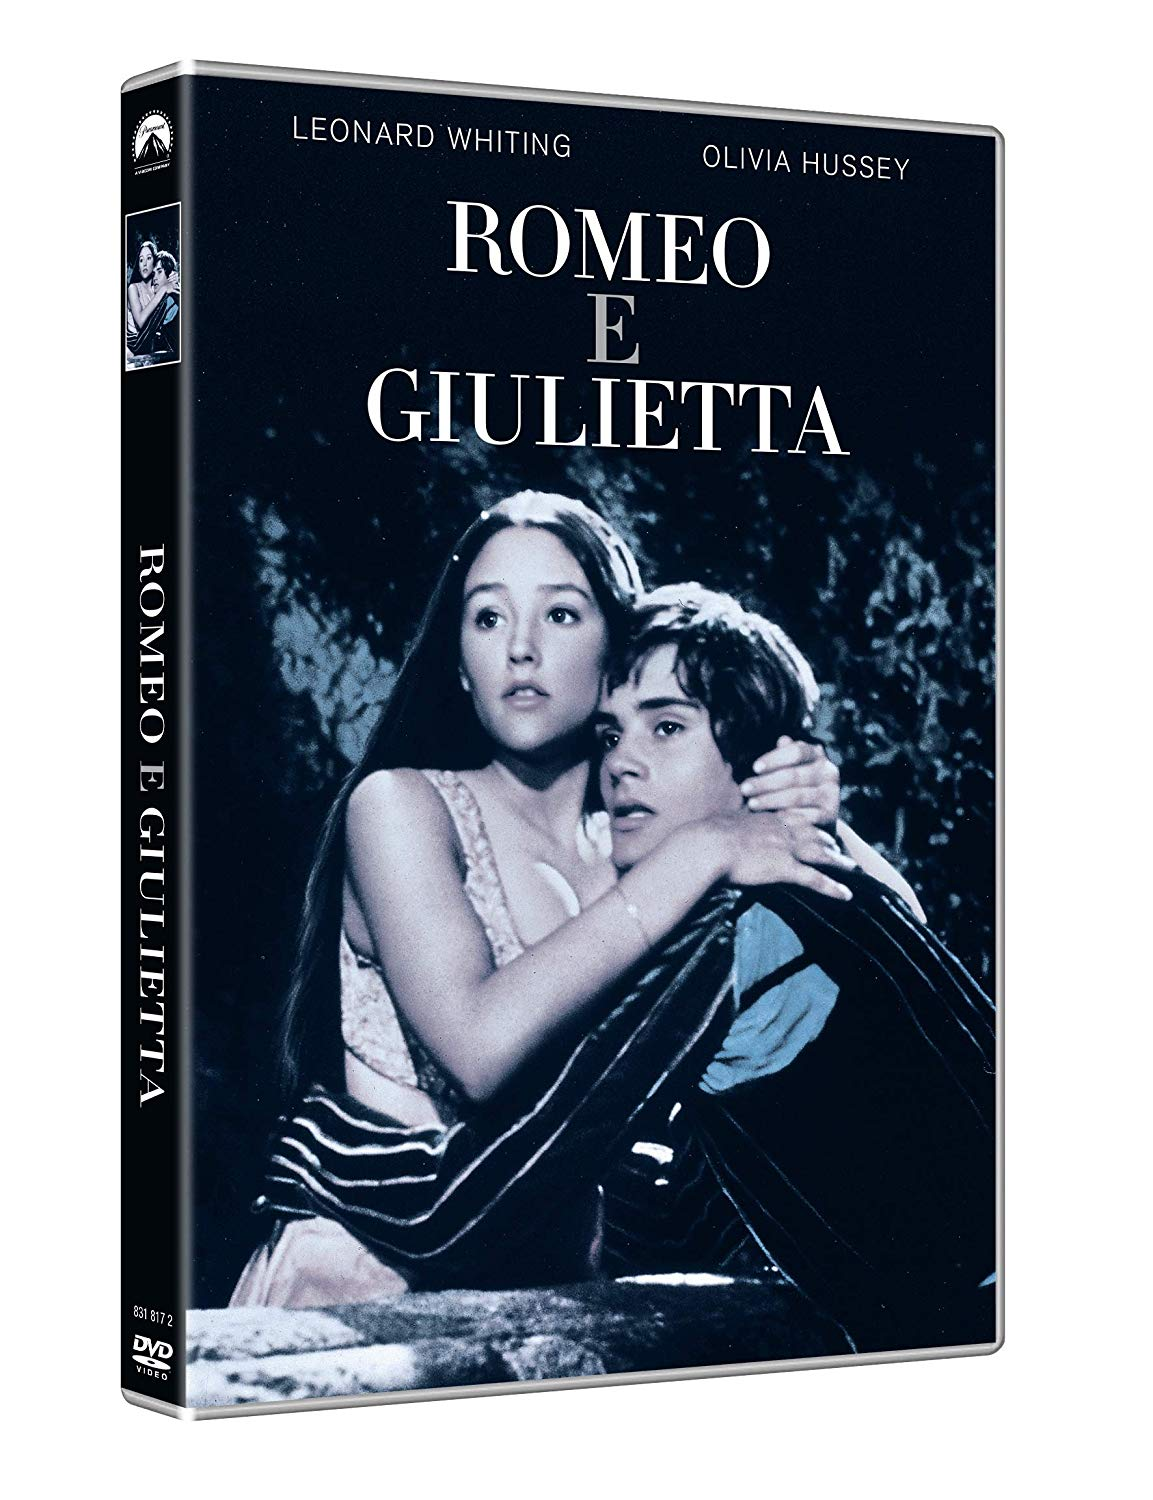 ROMEO E GIULIETTA (SAN VALENTINO COLLECTION) (DVD)